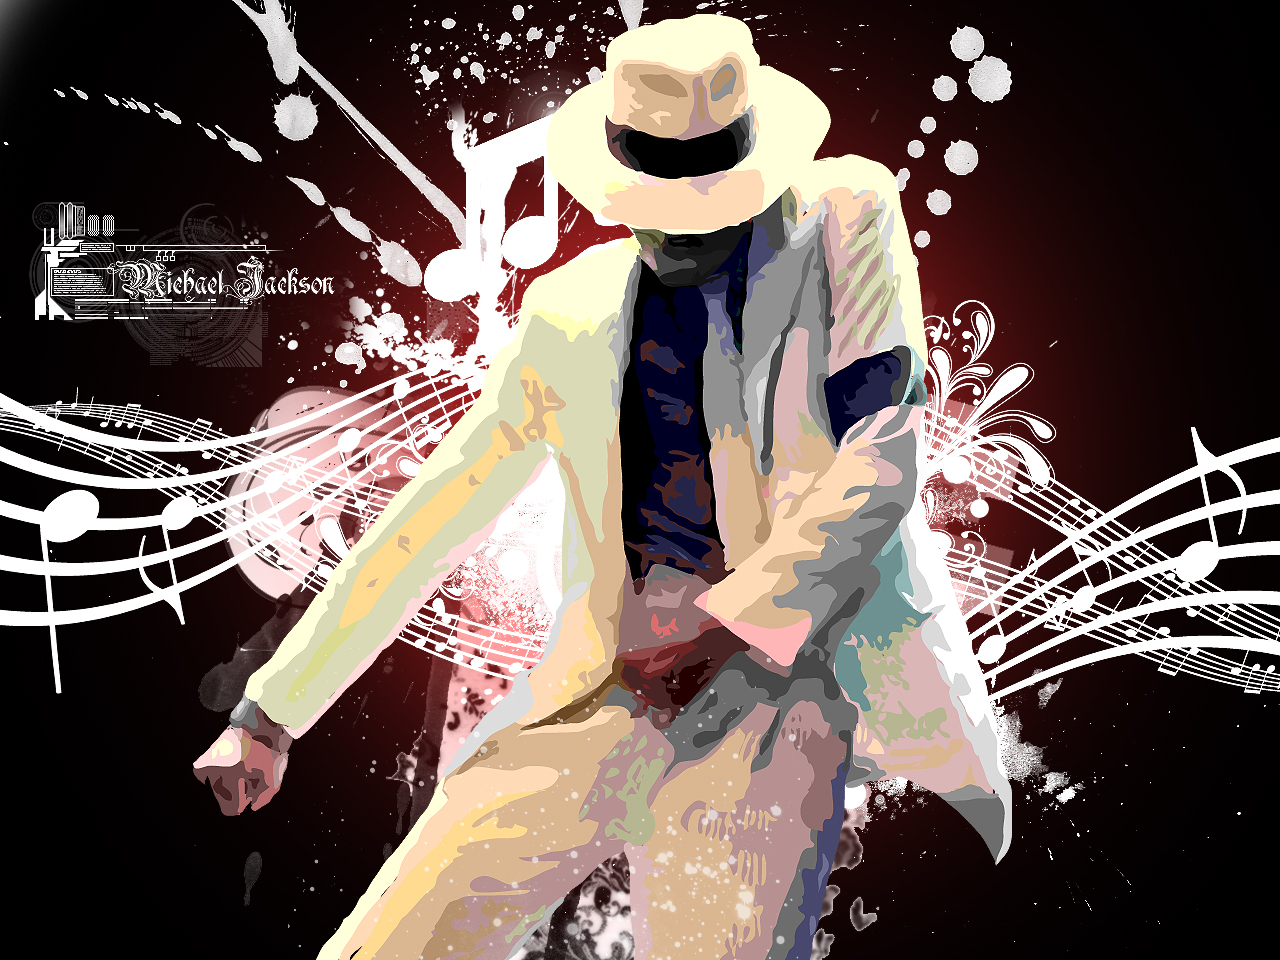 mj background - wallpapersafari